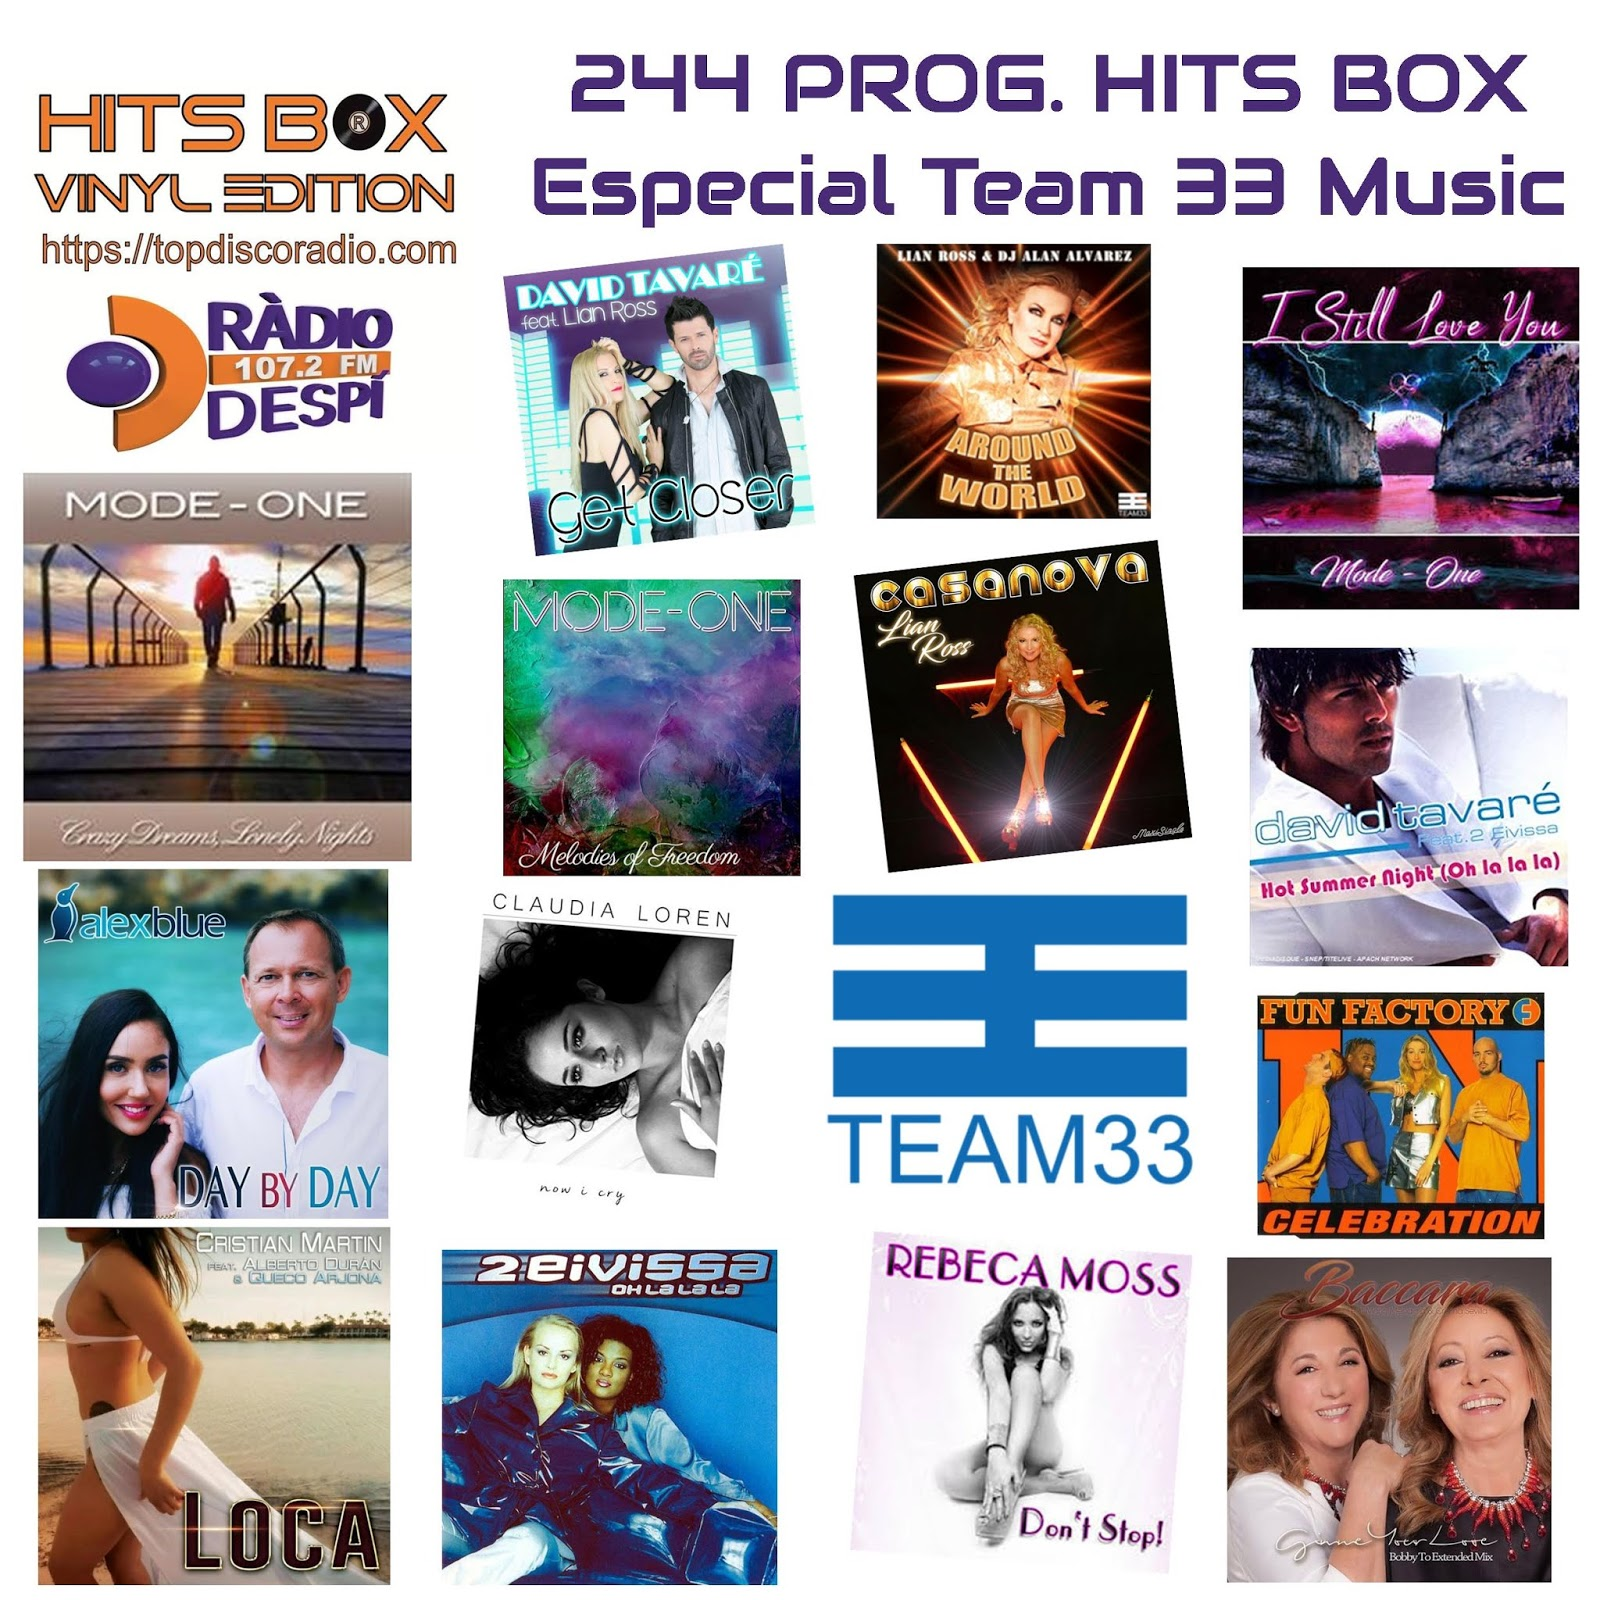 244 Programa Hits Box Especial Team 33 Music.